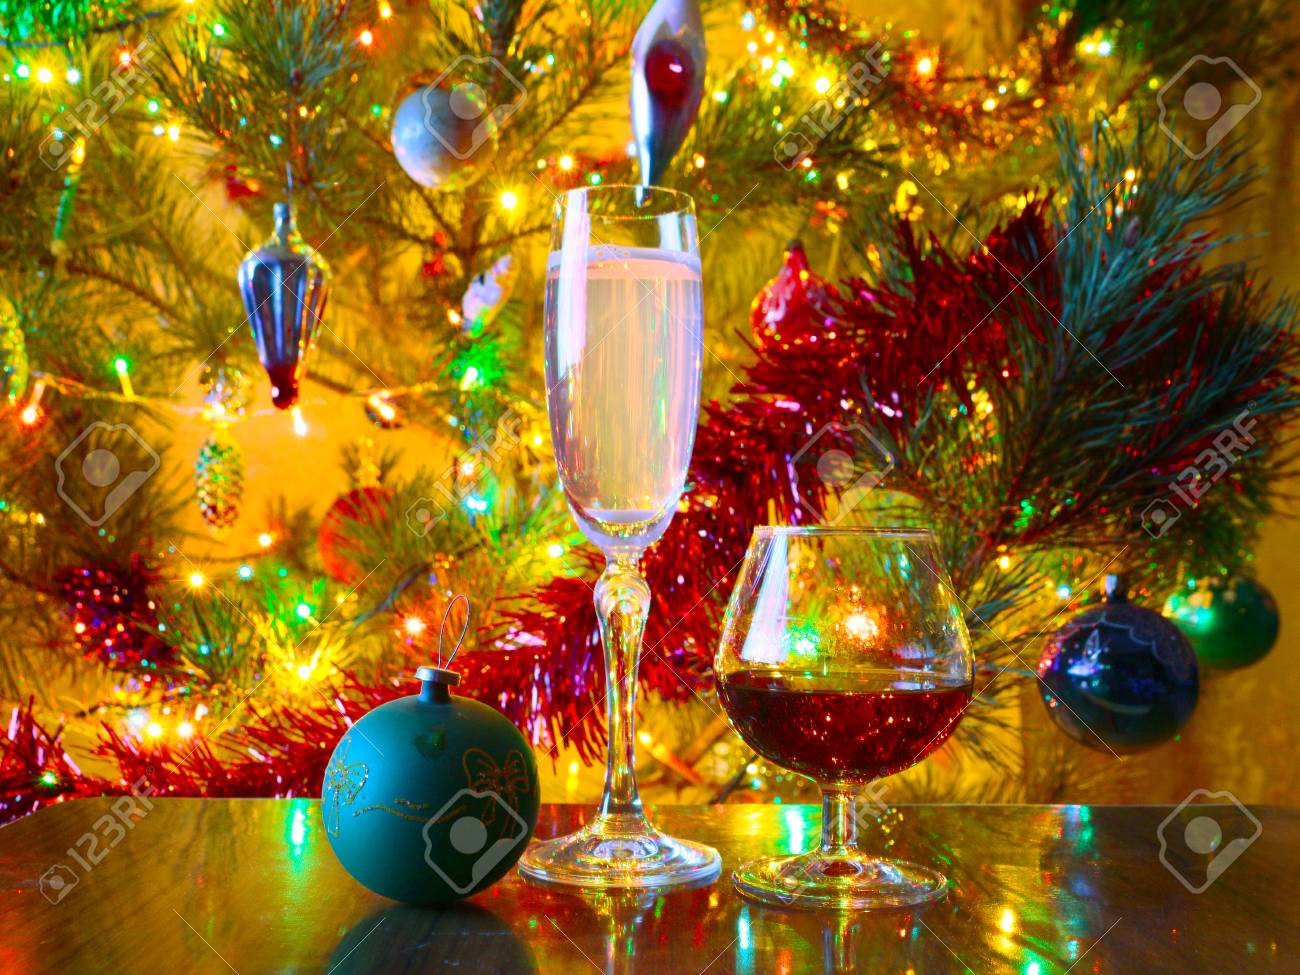 Christmas Liquor.Glasses Of Wine And Strong Liquor On A Background Of Brightly